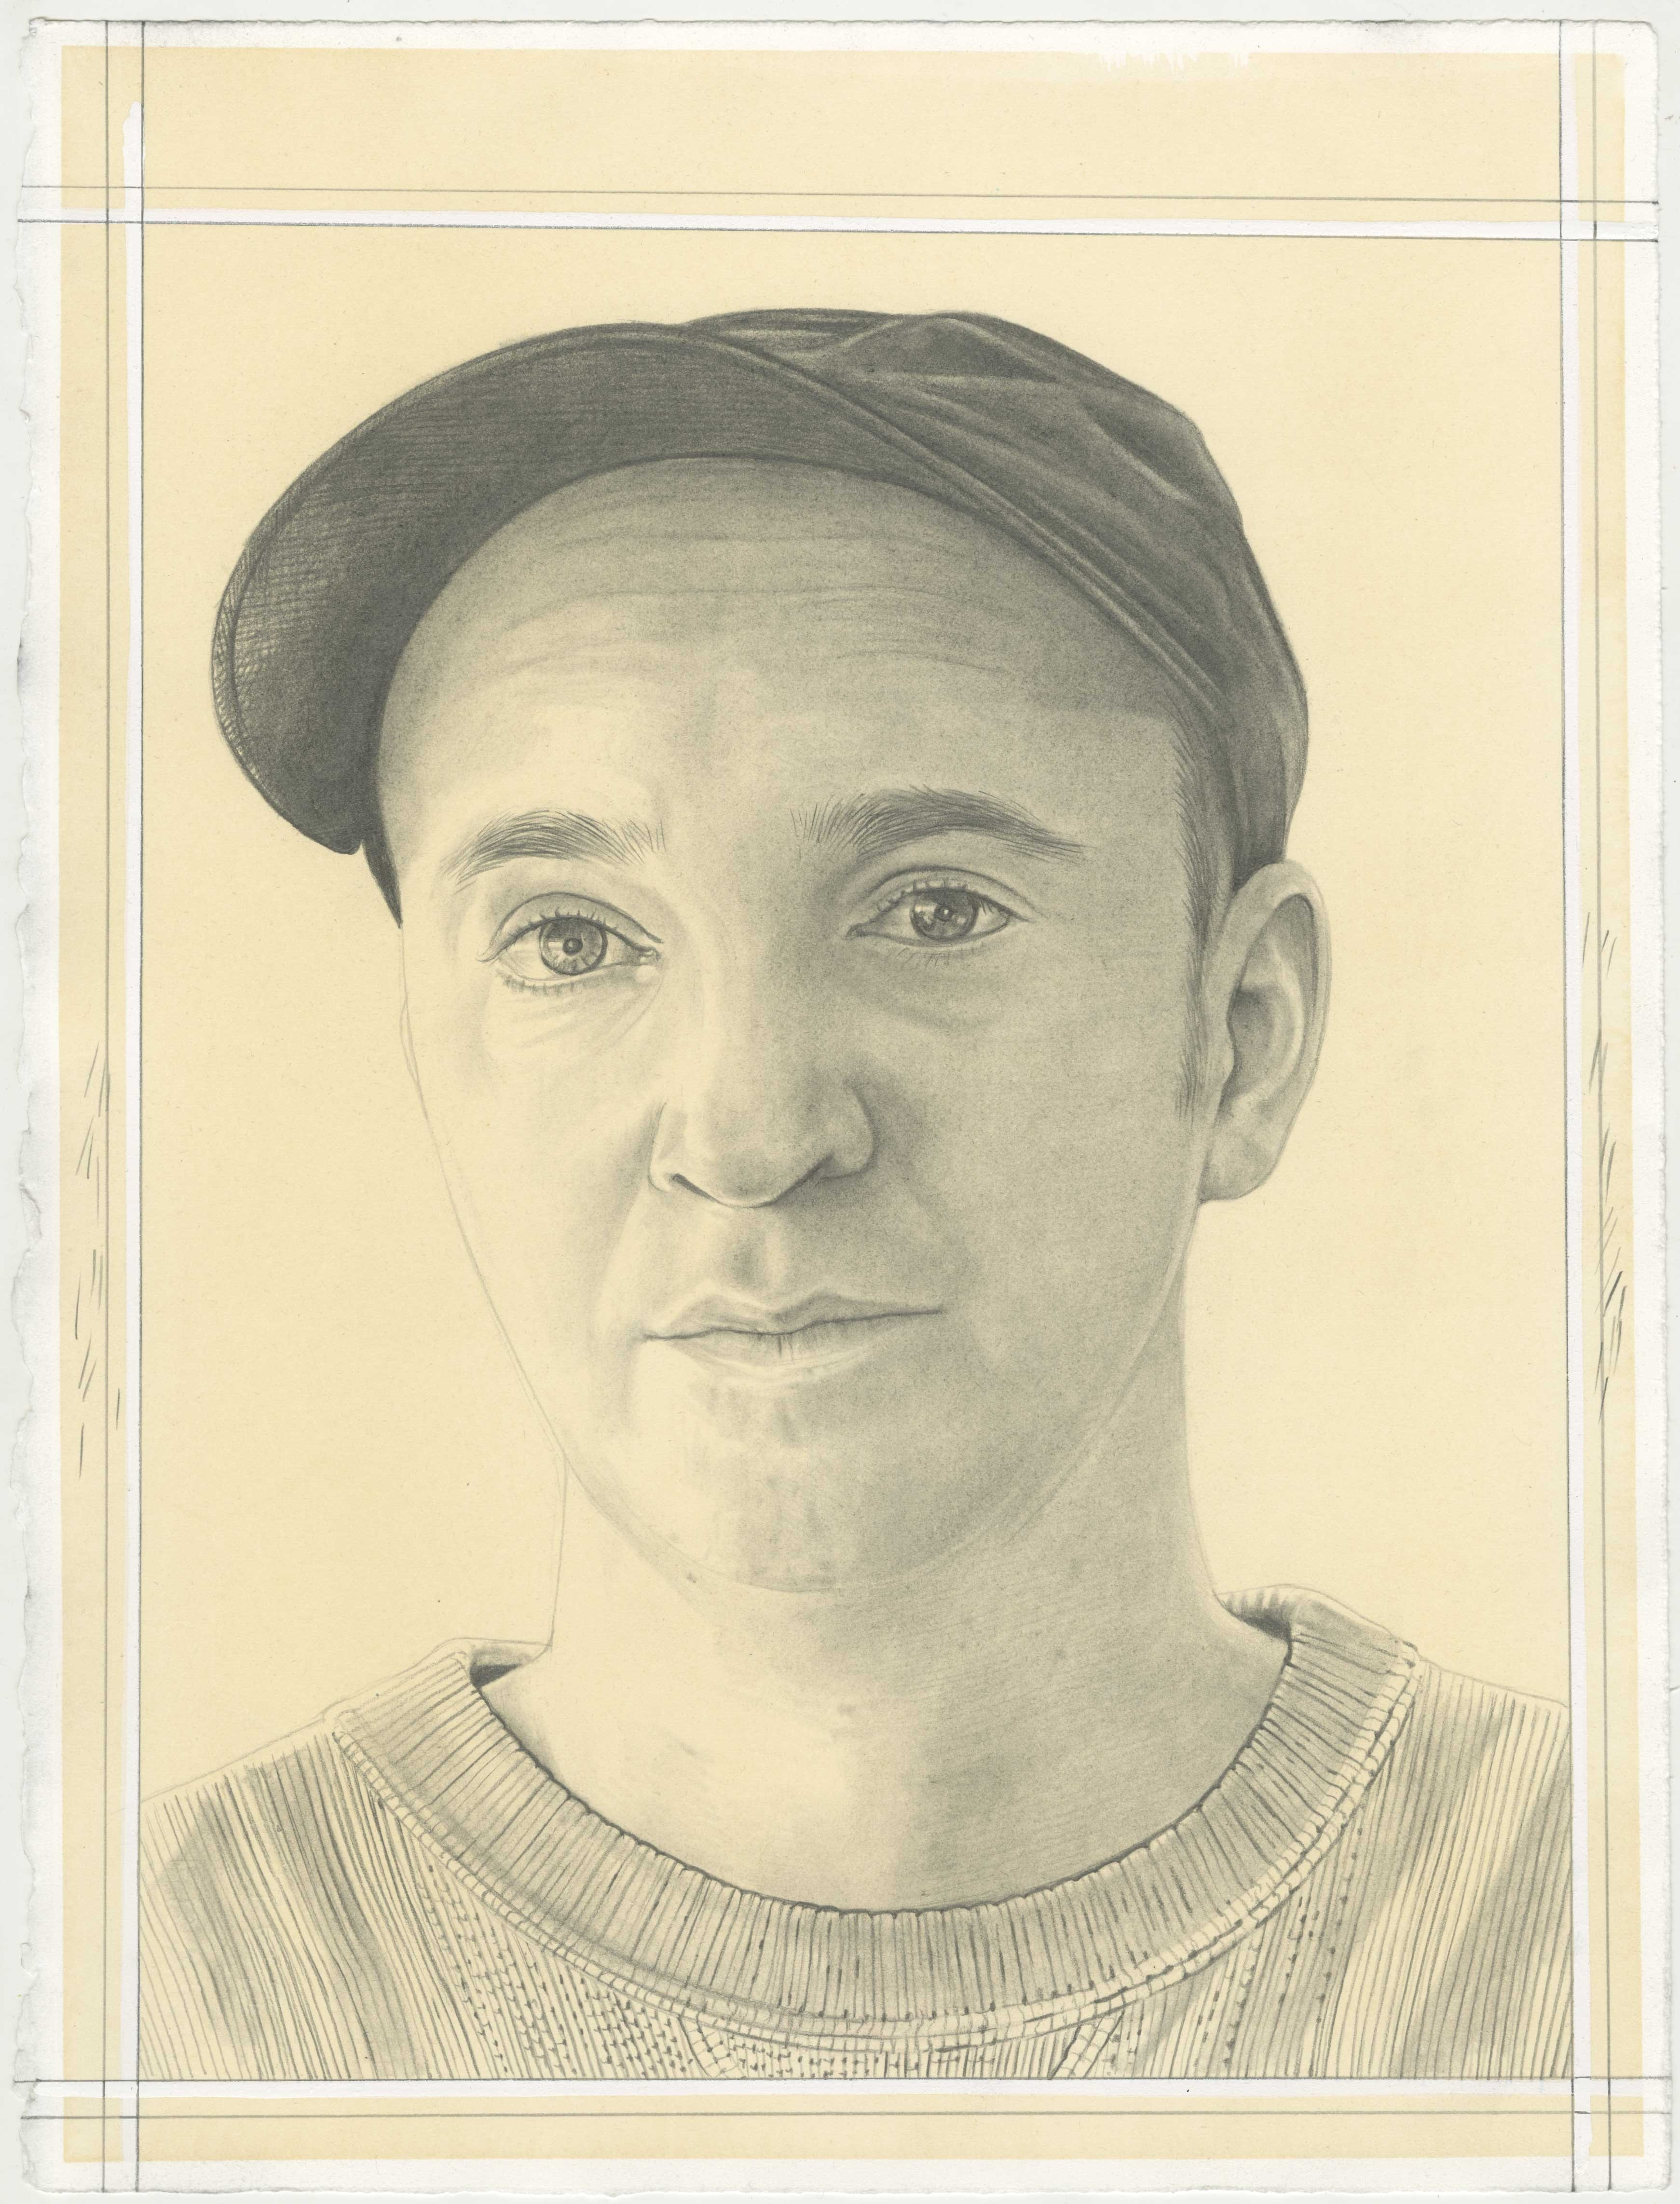 Portrait of KAWS, pencil on paper by Phong H. Bui.